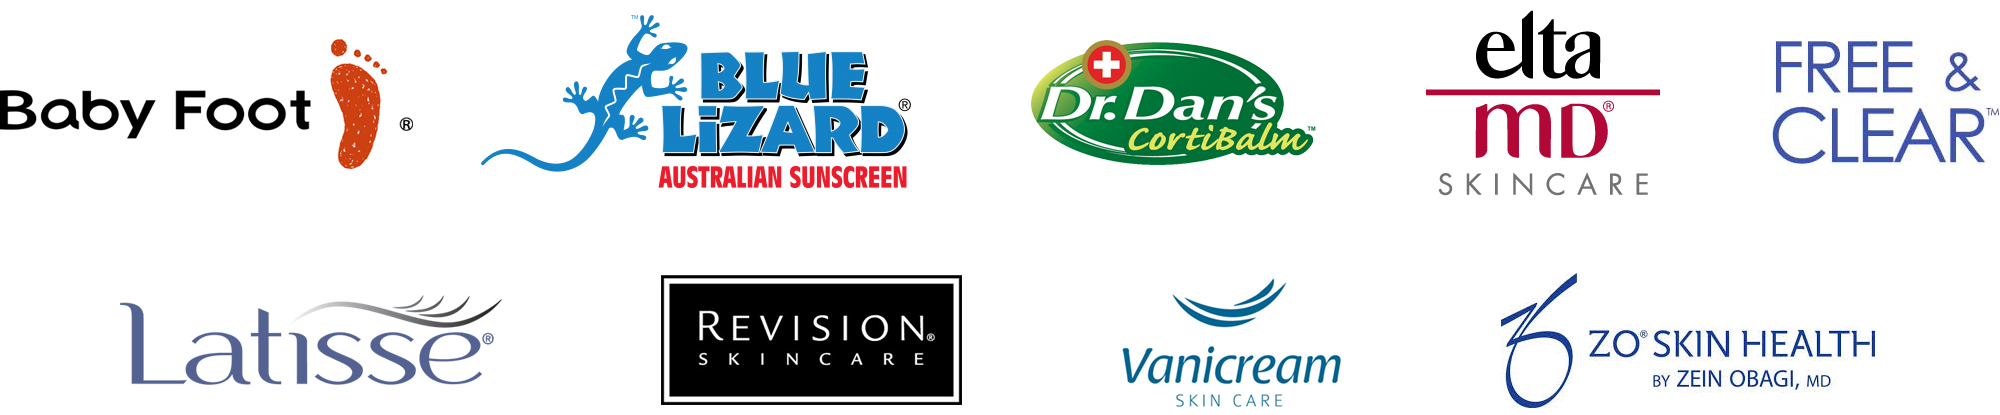 Shades Valley Dermatology carries Baby Foot, Blue Lizard, Dr. Dan's, Elta MD, Free & Clear, LAtisse, Revision Skincare, Vanicream, and ZO Skin Health skin care products.